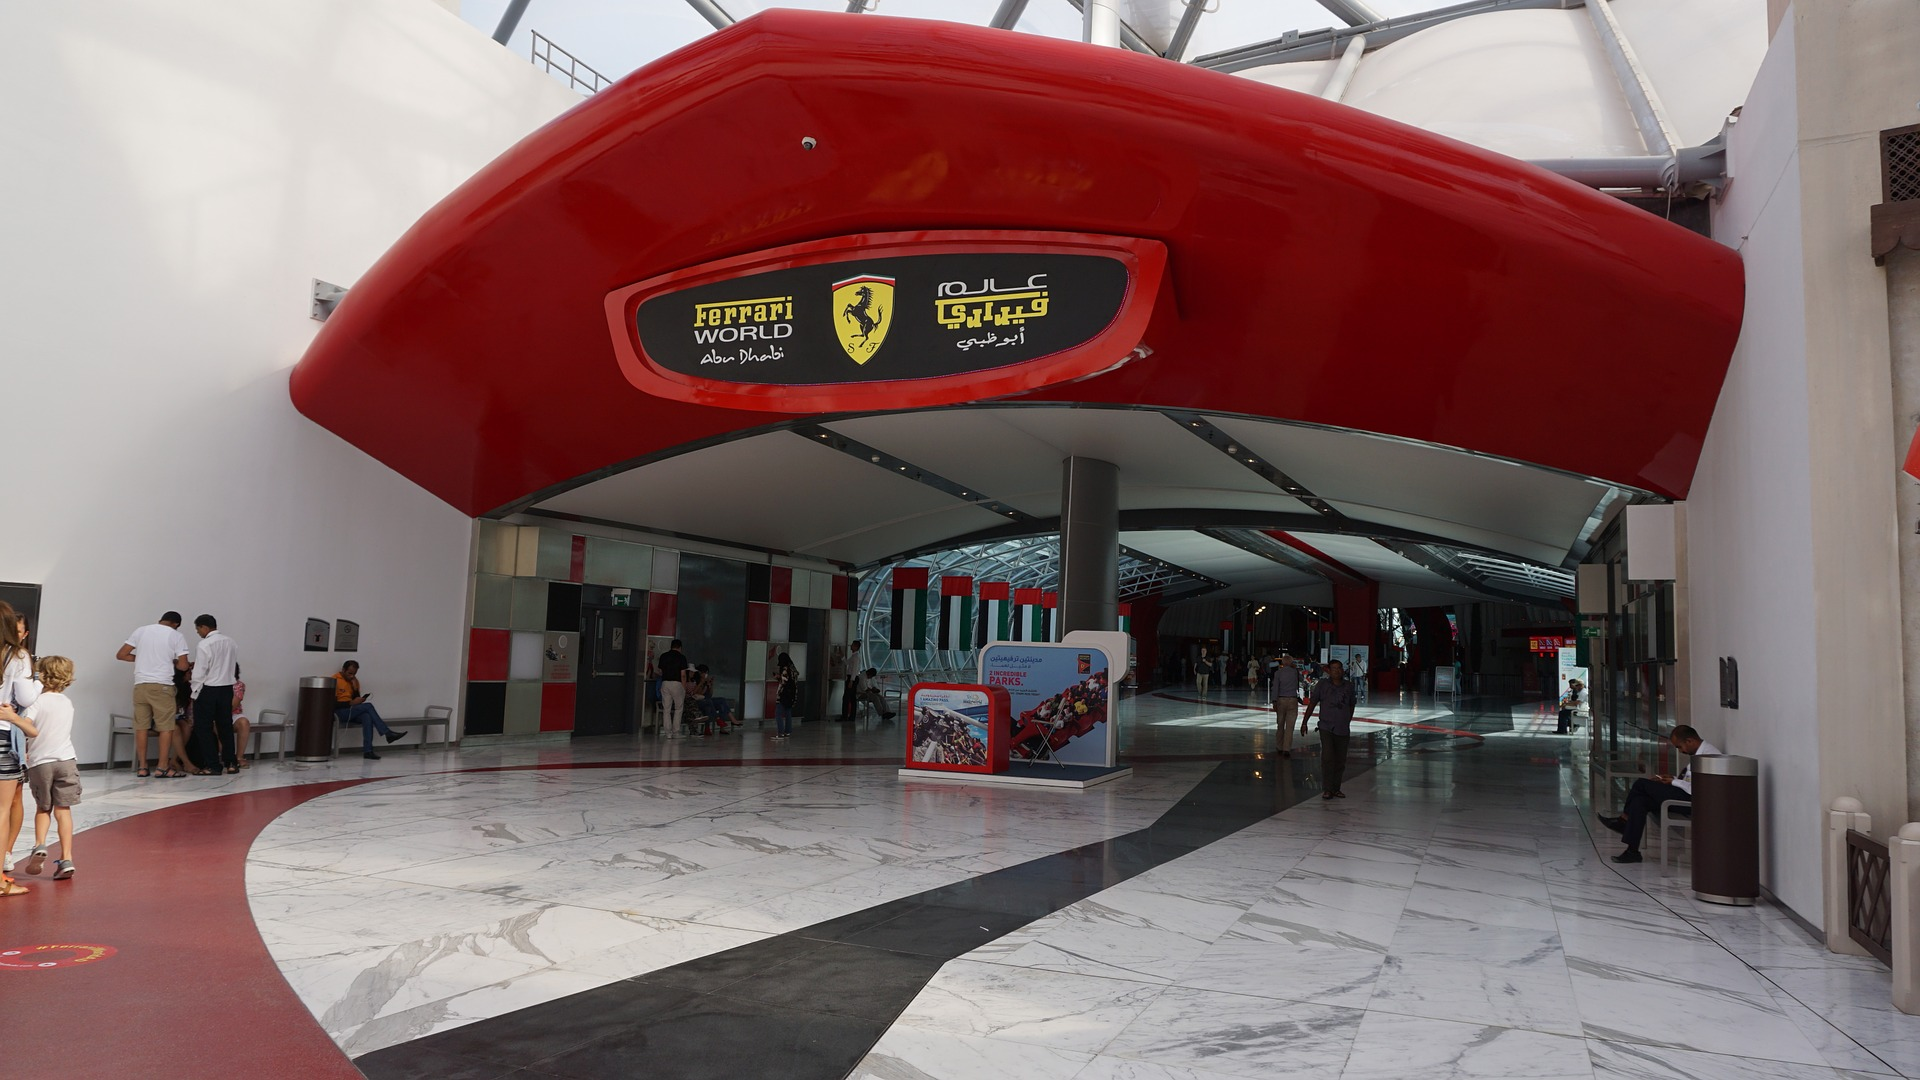 Тематичний парк Ferrari World